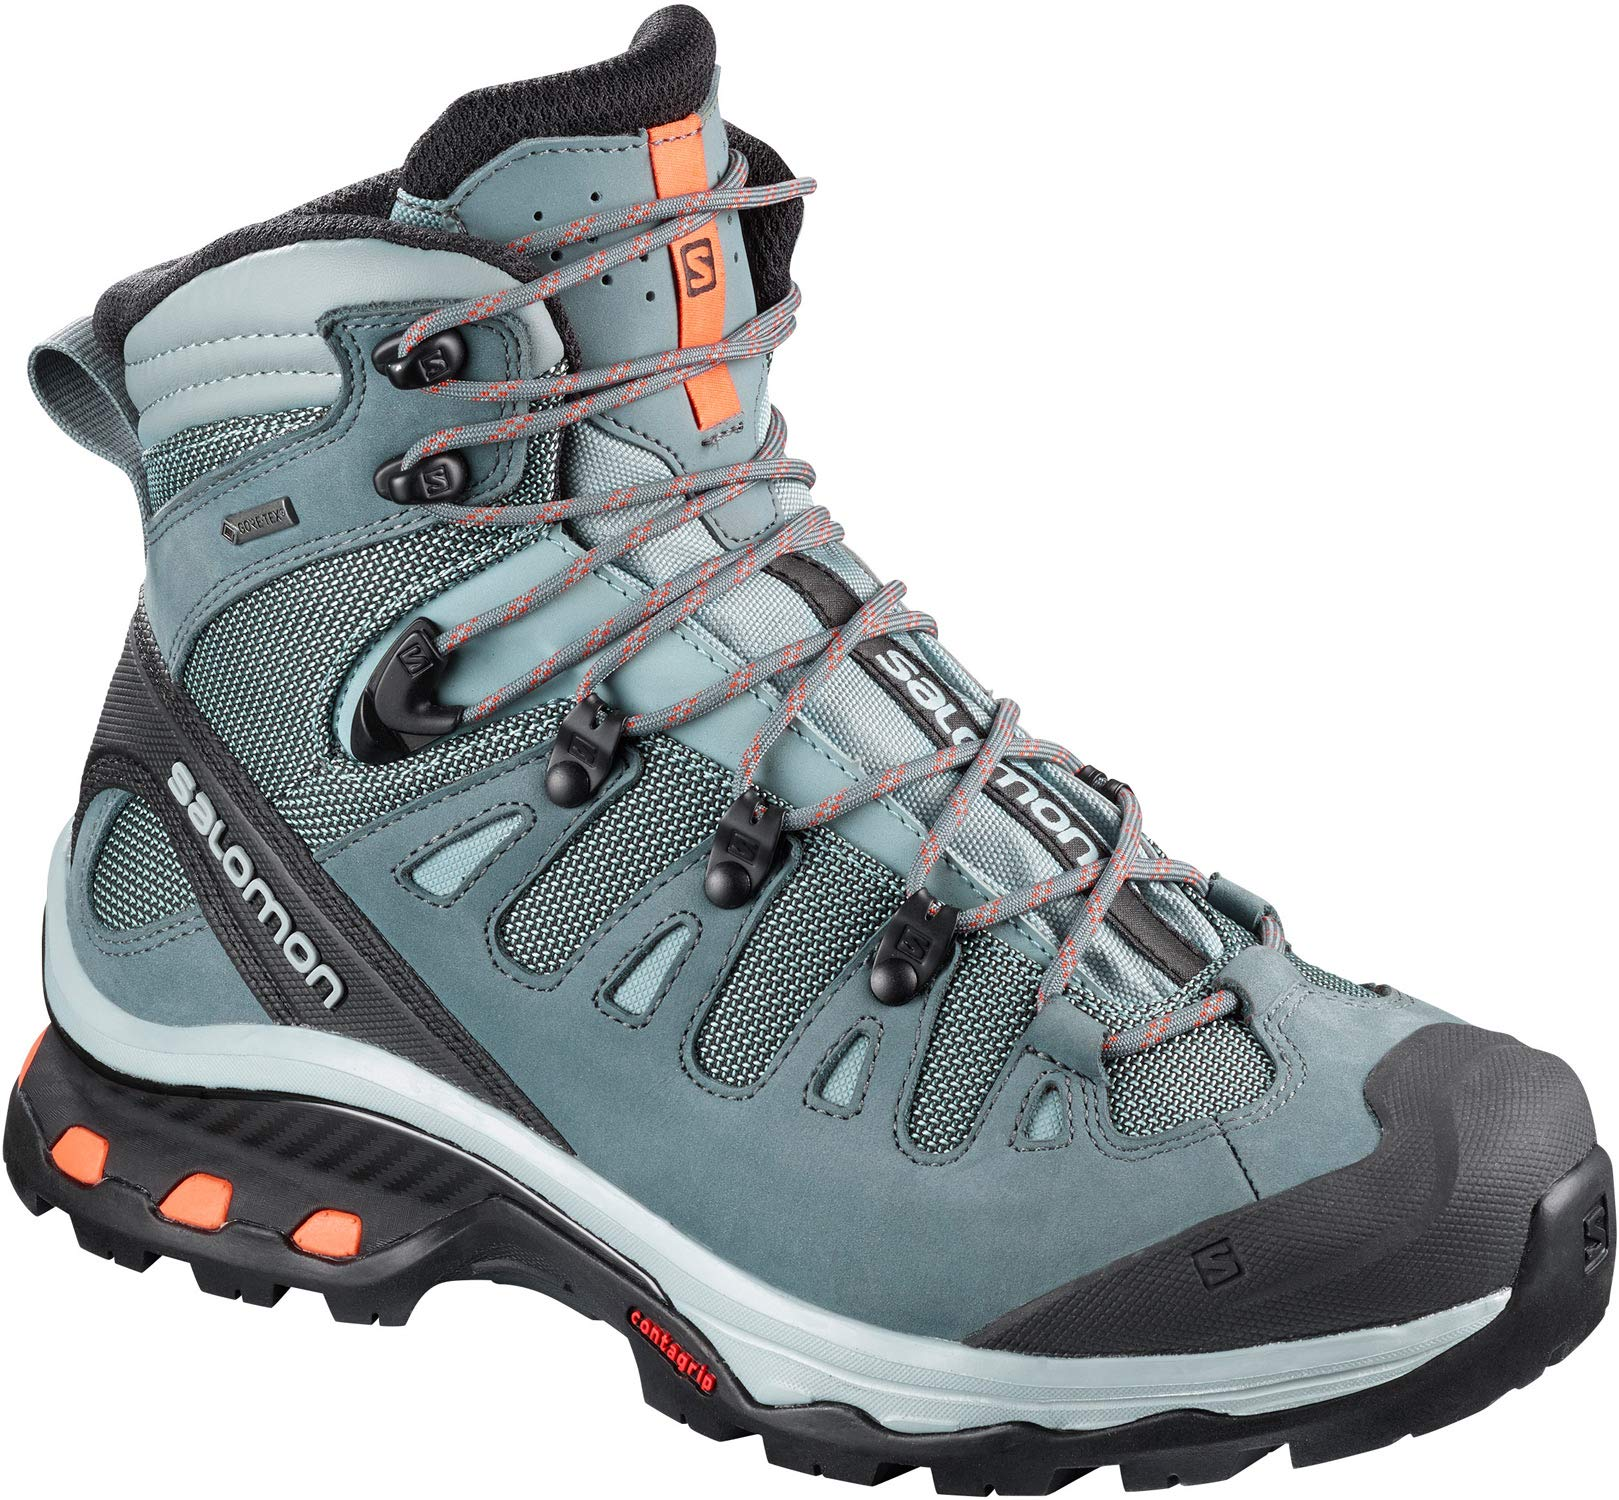 Salomon Women's Quest 4D 3 GTX Backpacking Boots, Lead/Stormy Weather/Bird Of Paradise, 8.5 by SALOMON